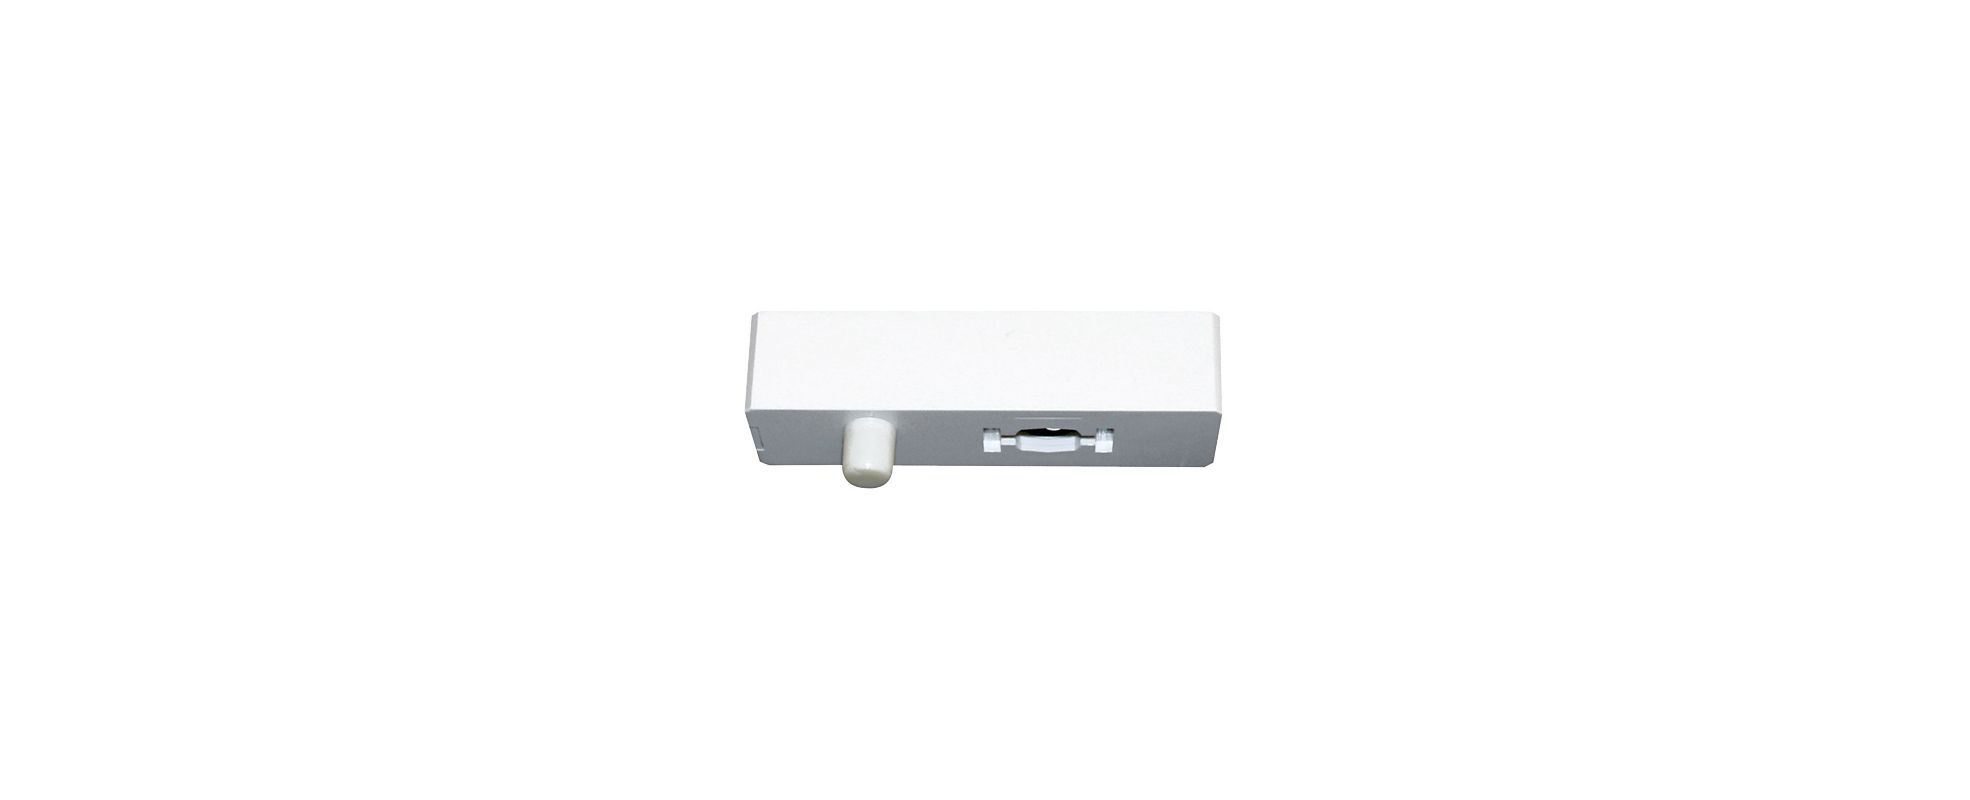 Elco Ep901 Dimmer Switch White Indoor Lighting Track Accessories